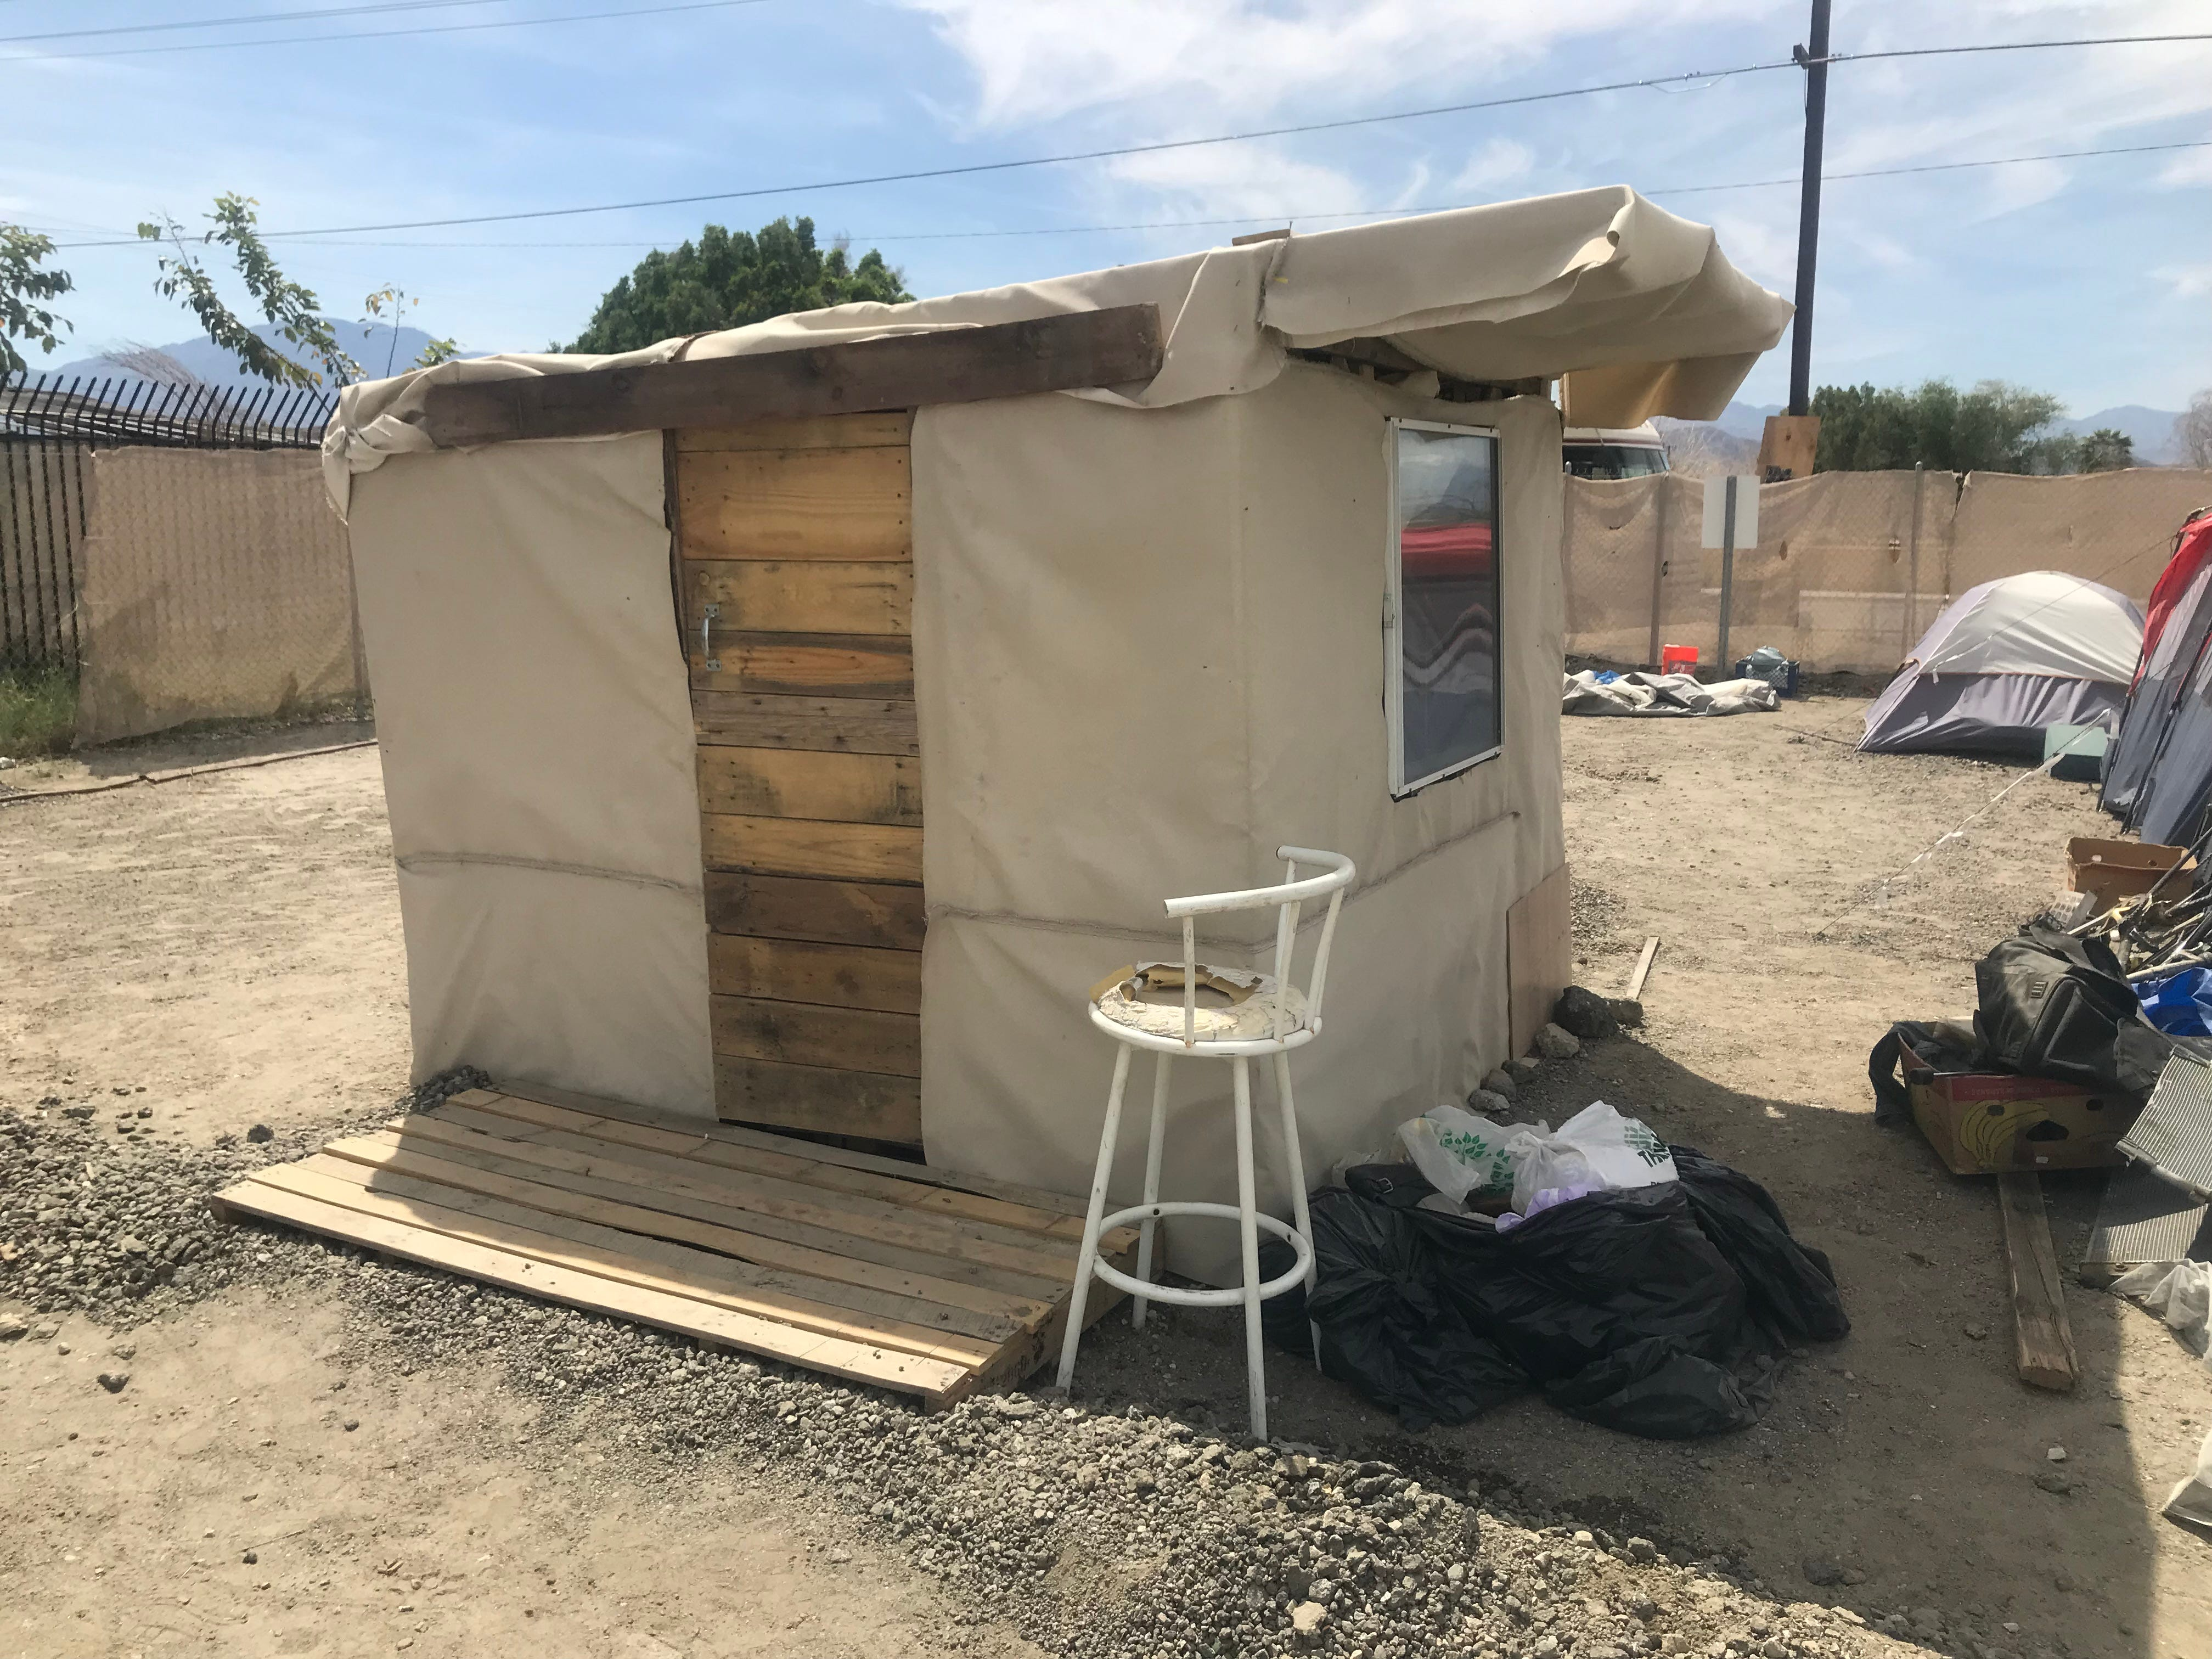 In the past few weeks, residents helped to build a hut, complete with a window, at the One Stop Shoppe encampment.